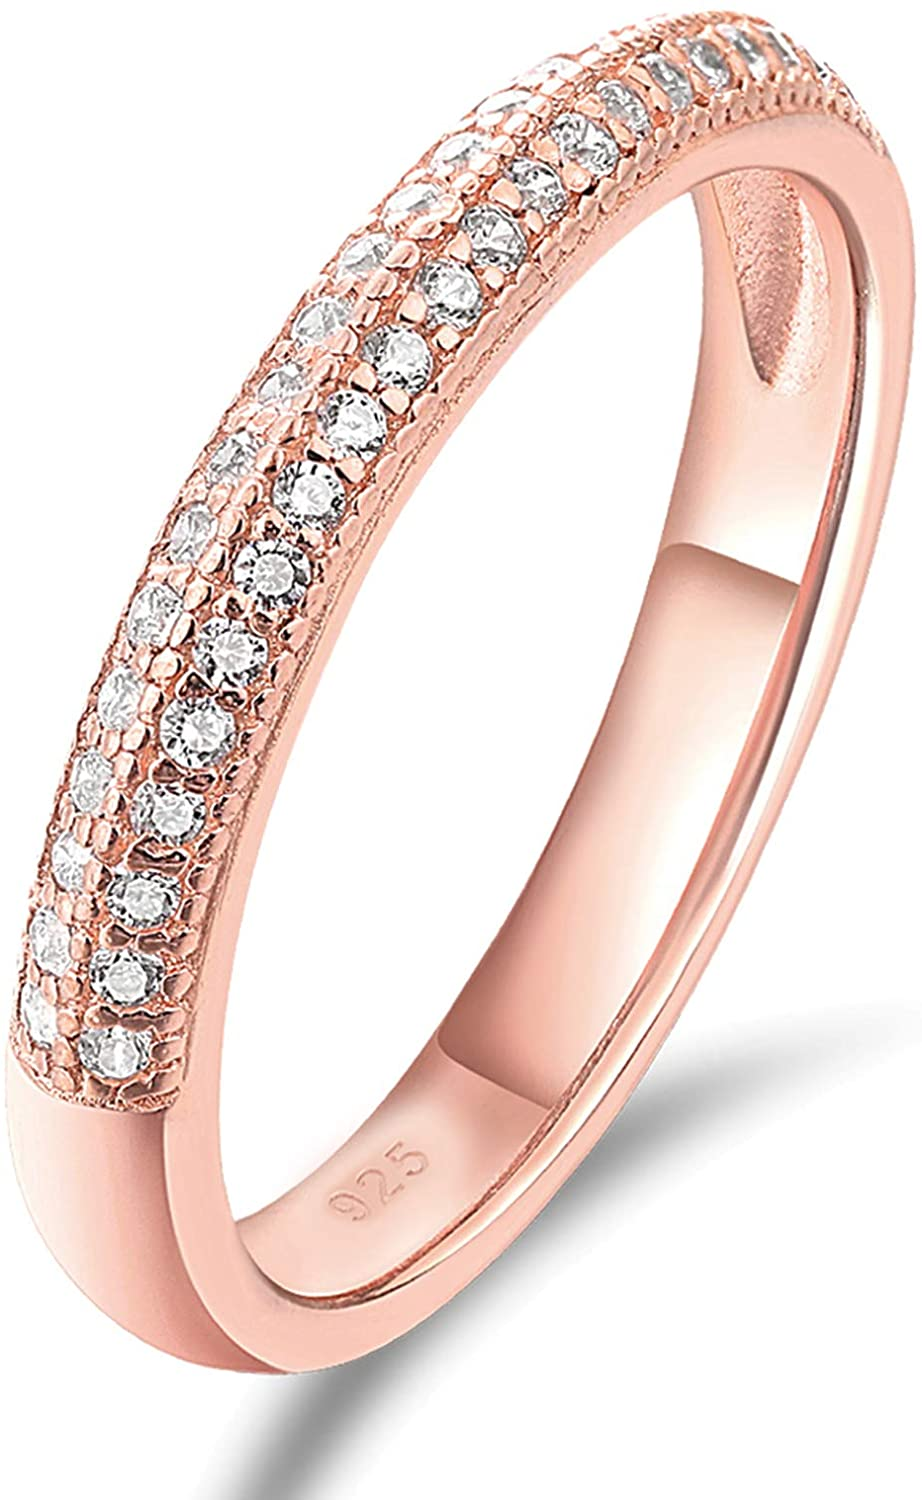 AHLOE JEWELRY Rose Gold Etenity Rings for Women 925 Sterling Silver Stacking Engagement Wedding Bands Cz Size 5-10